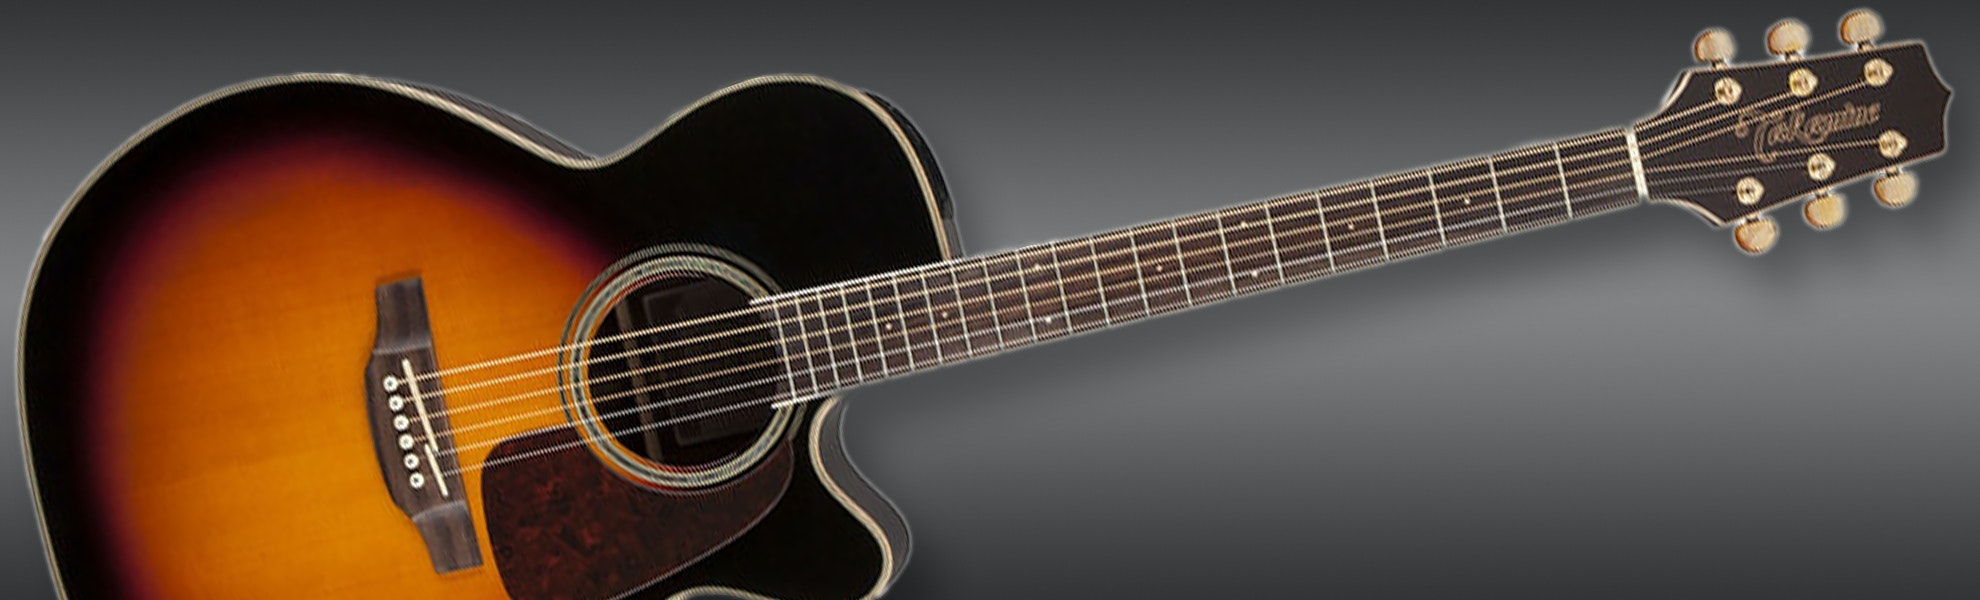 Takamine B Stock GN71CE Acoustic Guitar